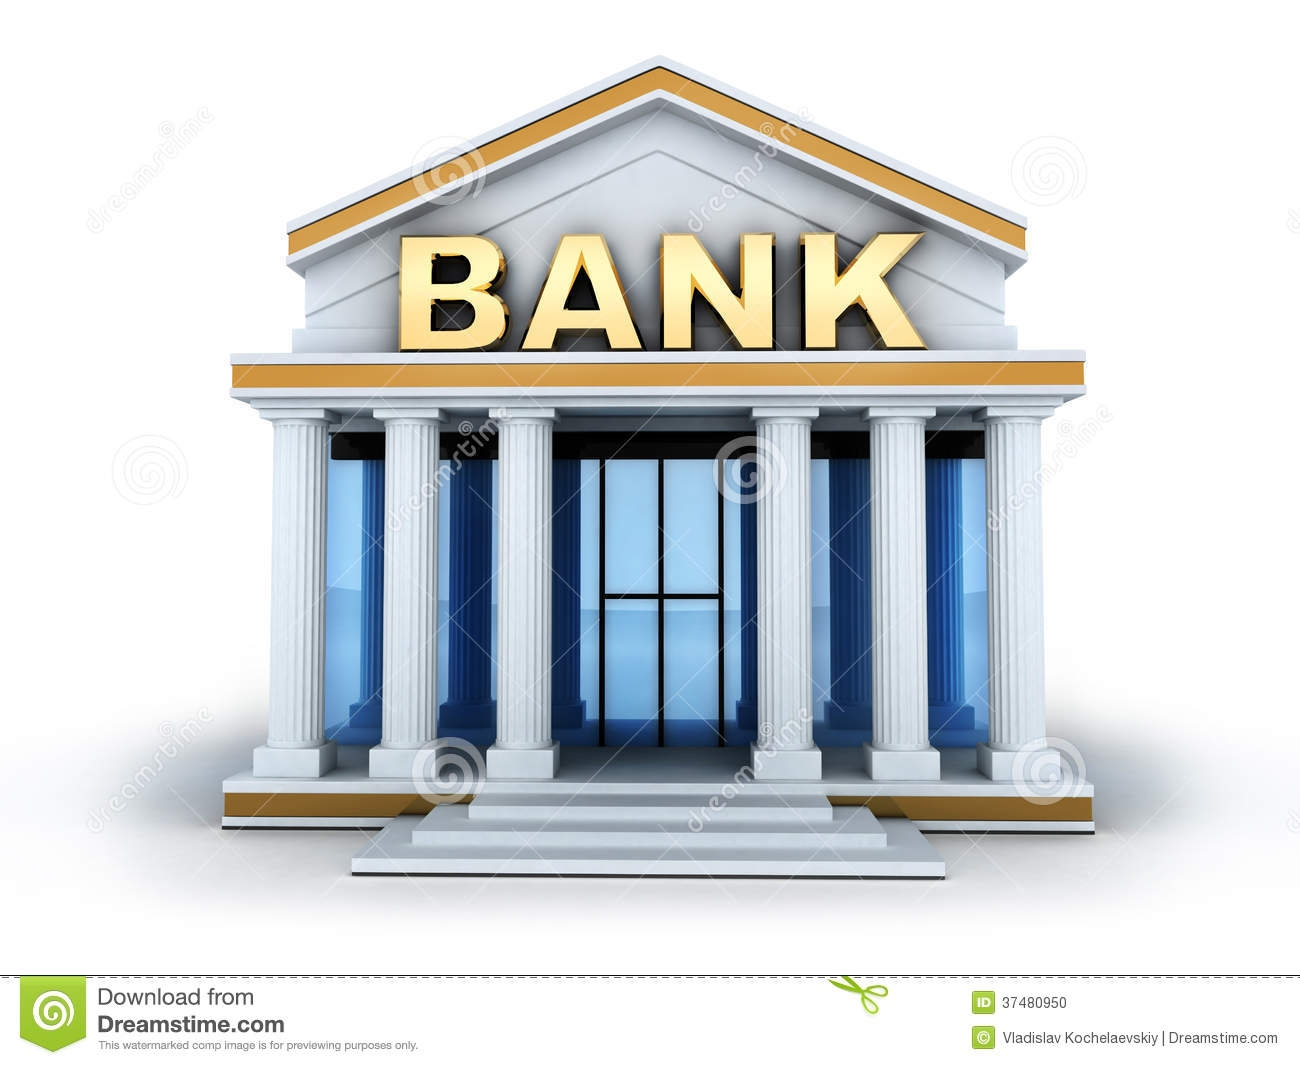 Bank clipart animated. Banking cliparts group national